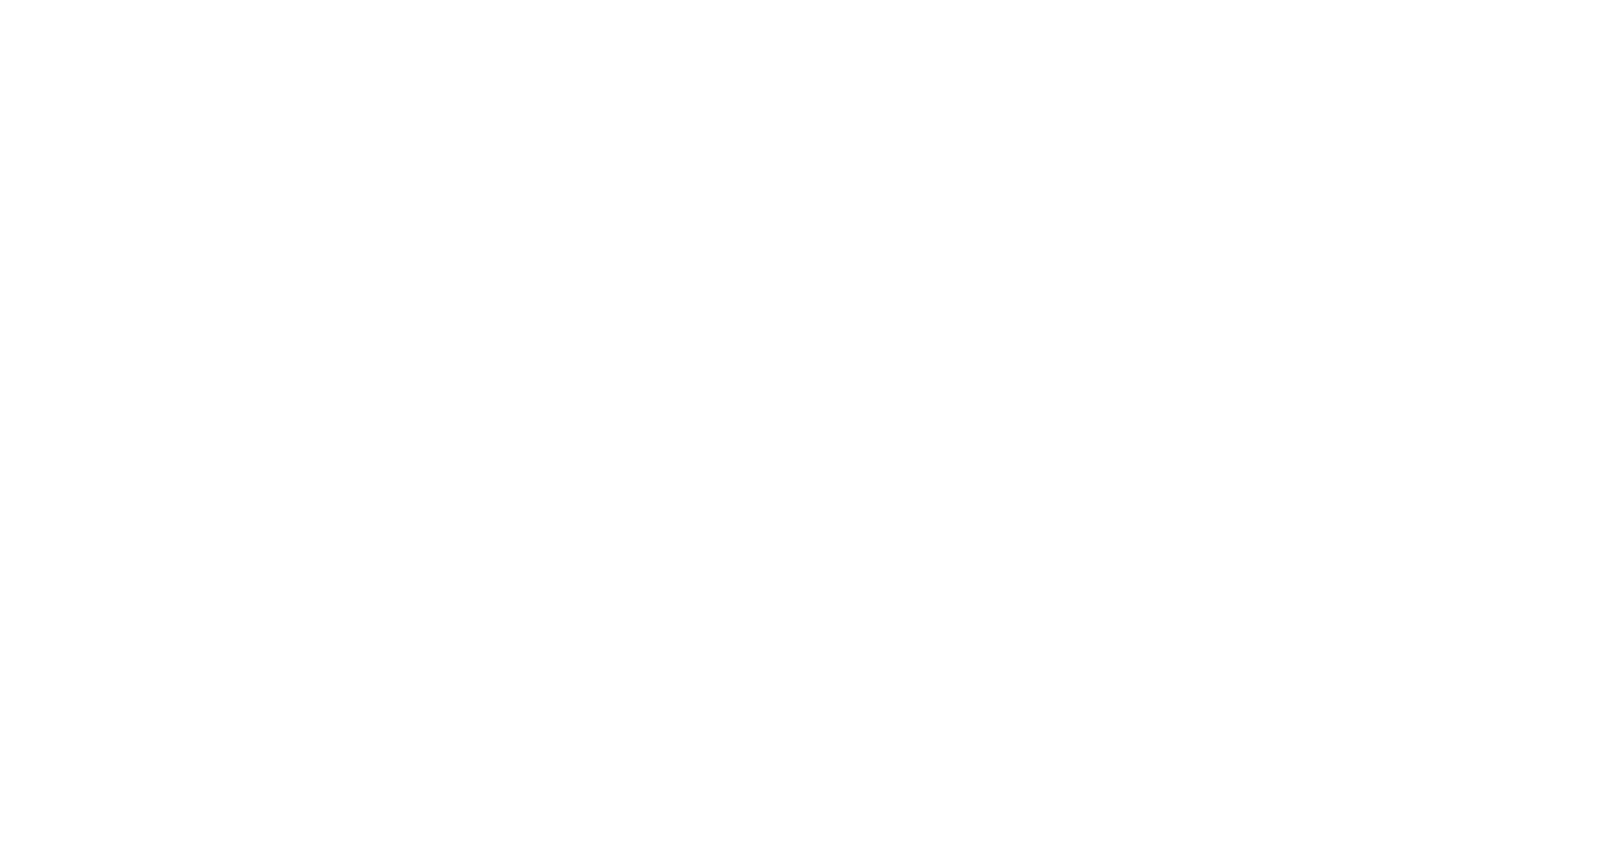 VRDB - Virtual Reality hardware and games